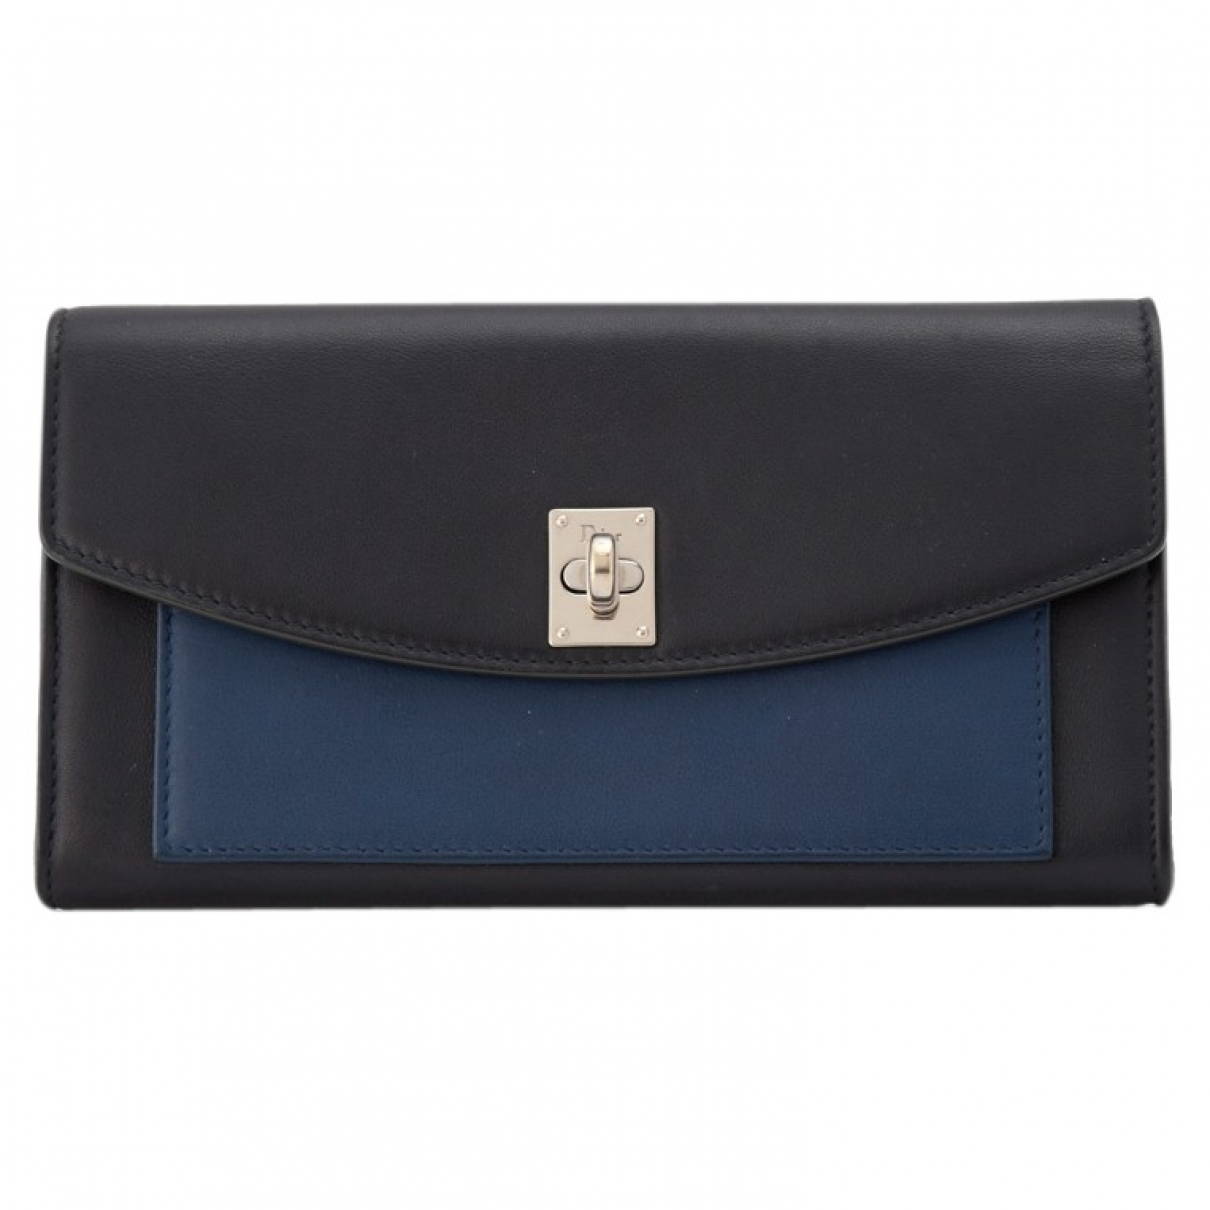 Dior \N Black Leather wallet for Women \N